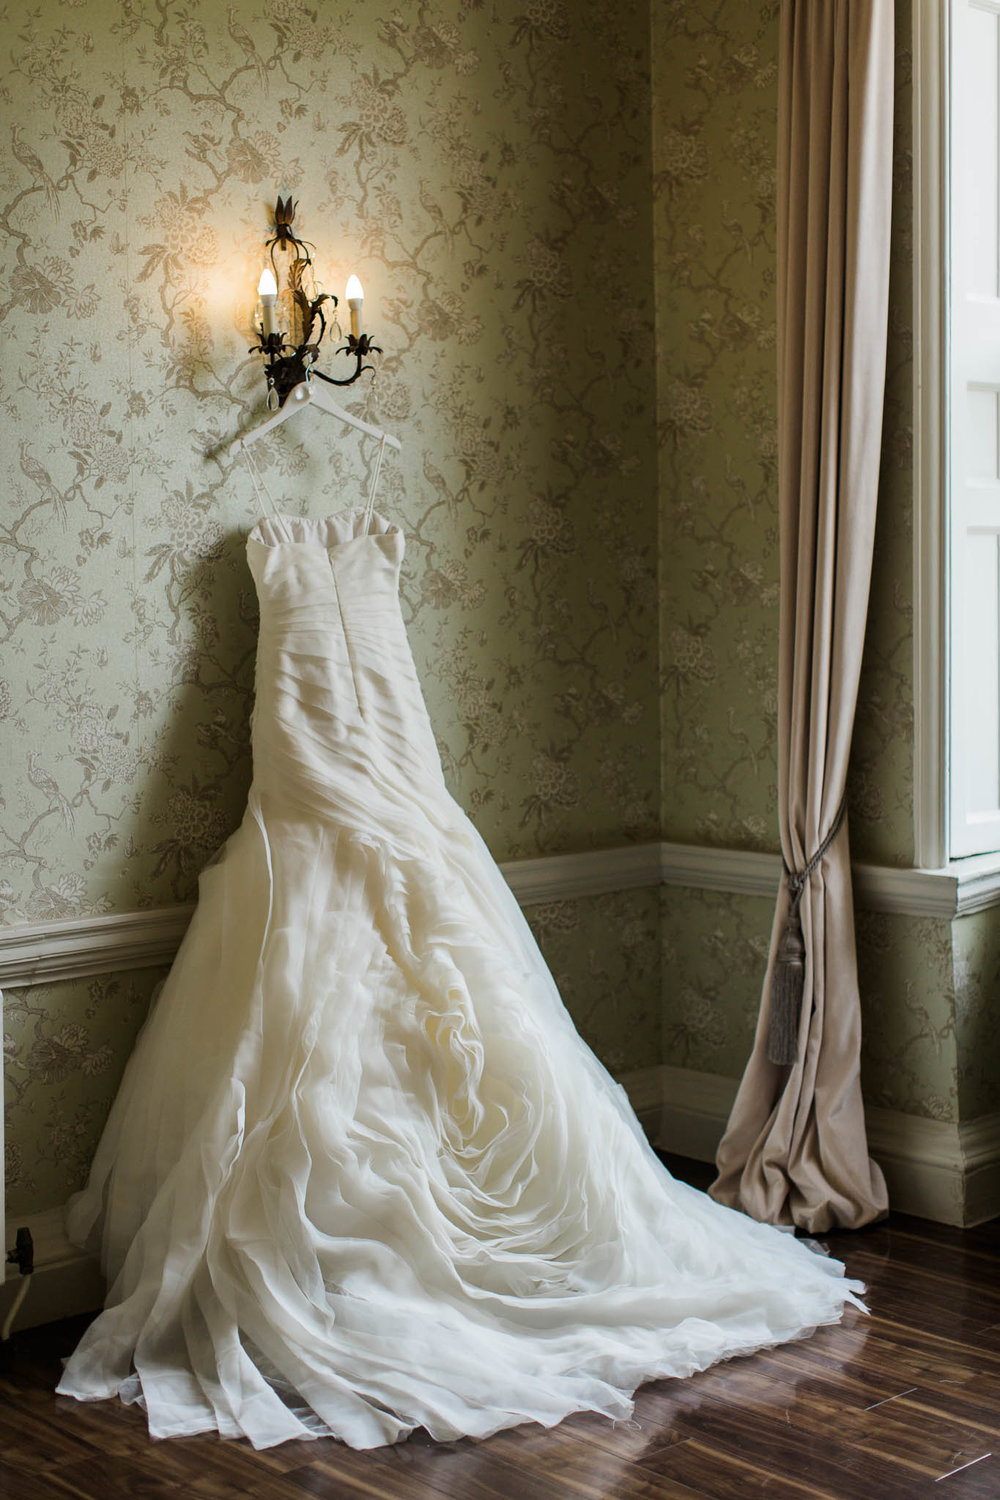 vera wang wedding dress hanging at morden hall